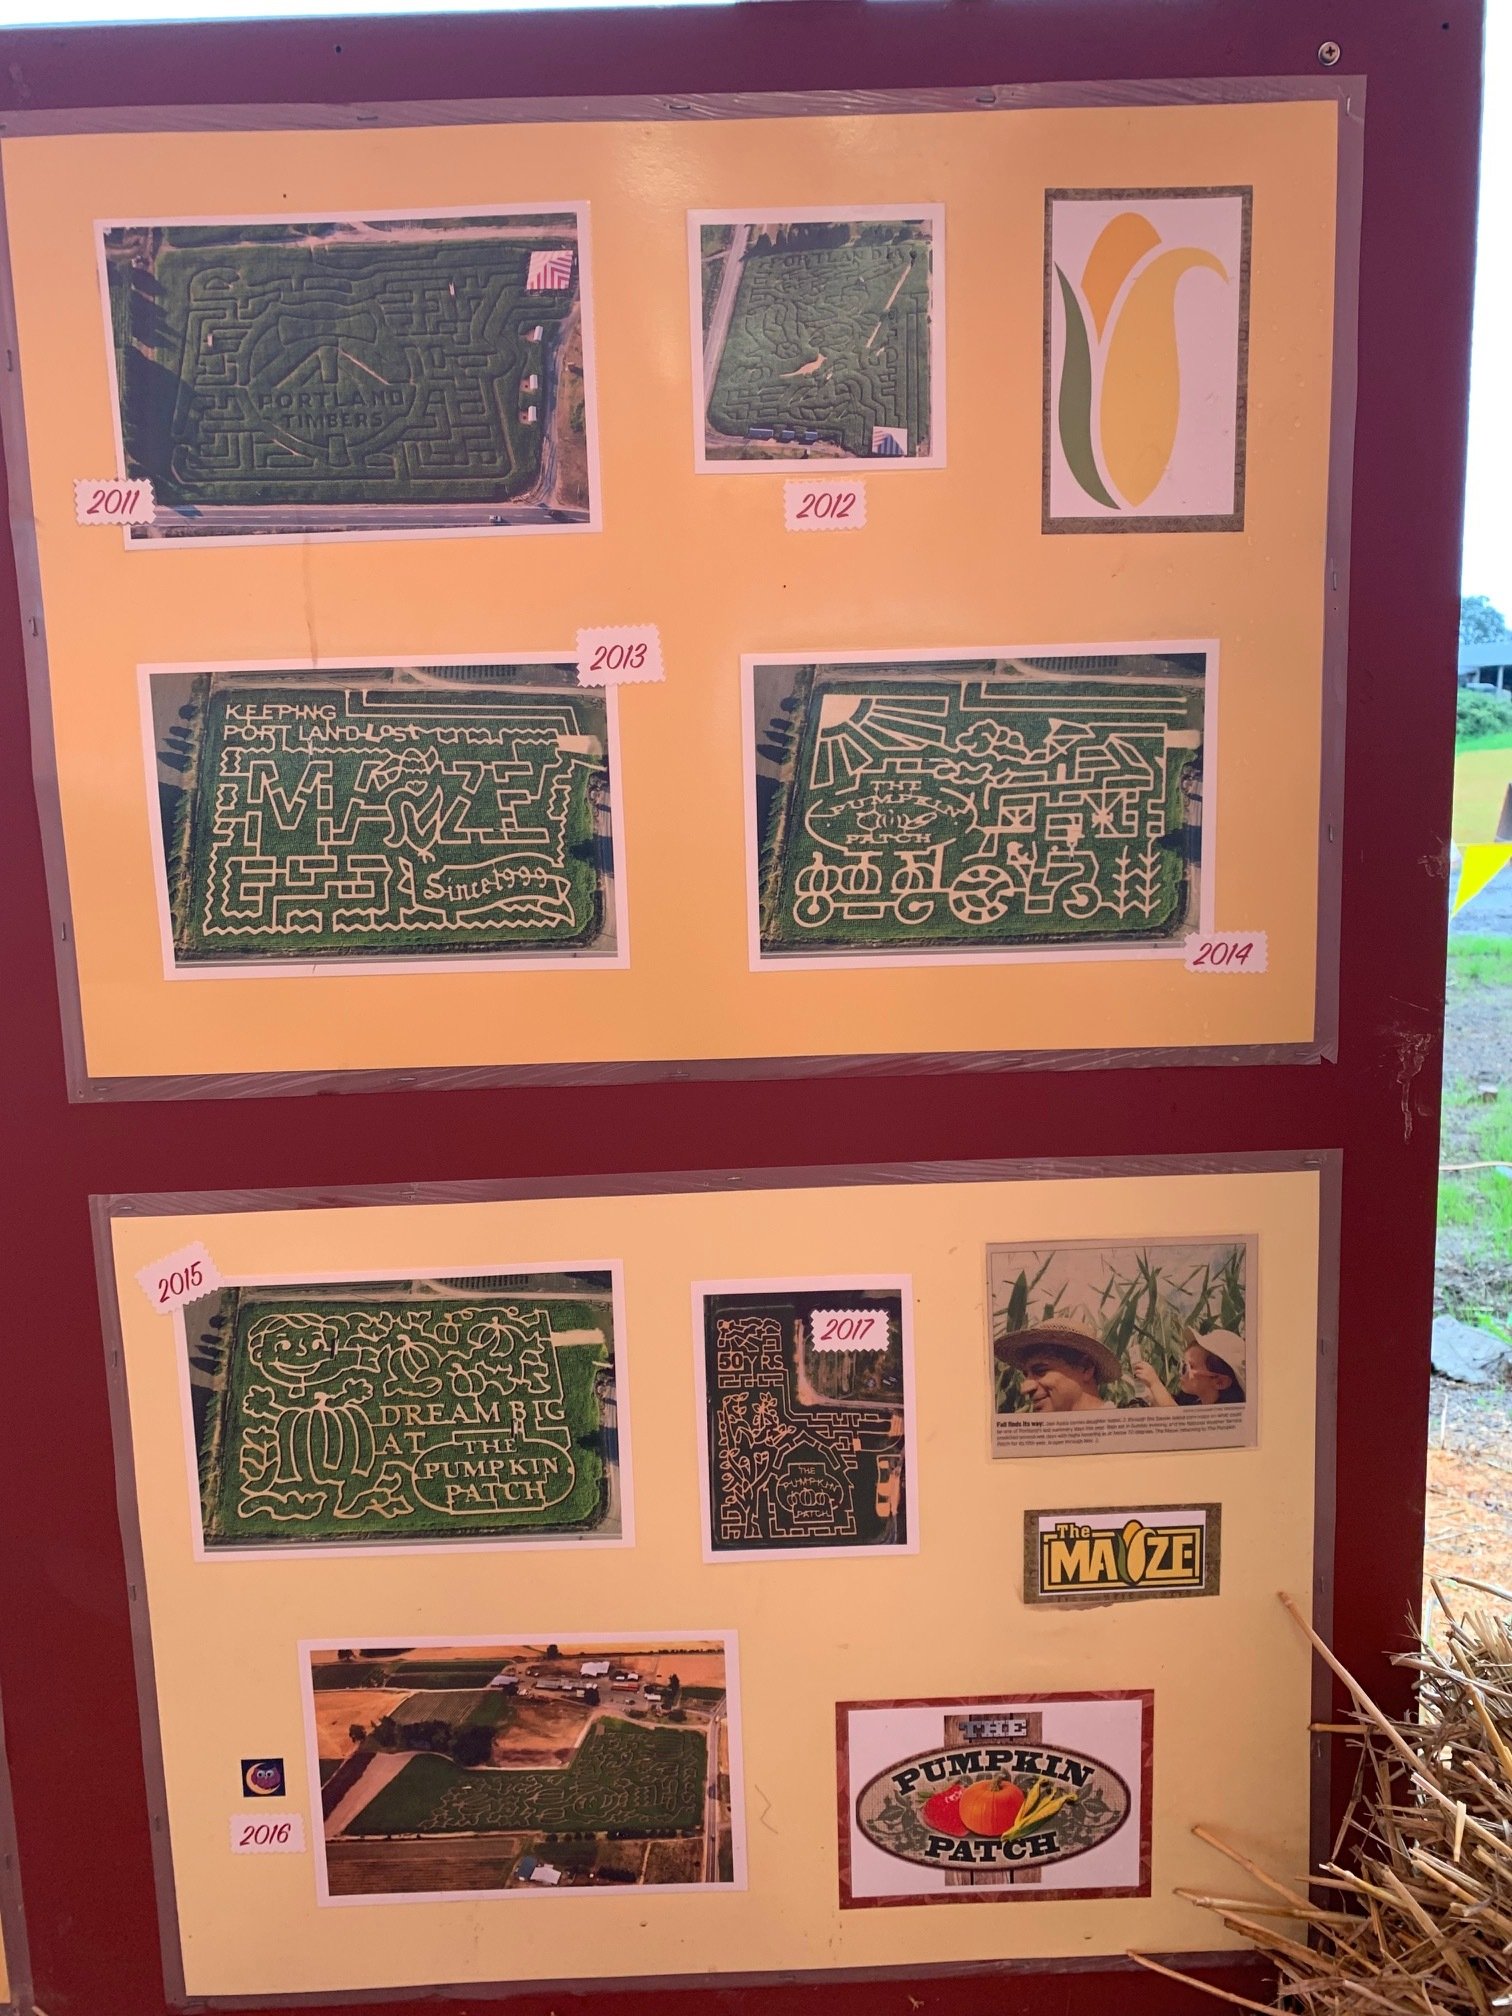 The rest of the historical, corn maze designs from the recent past. Image Courtesy: Dan Meyers